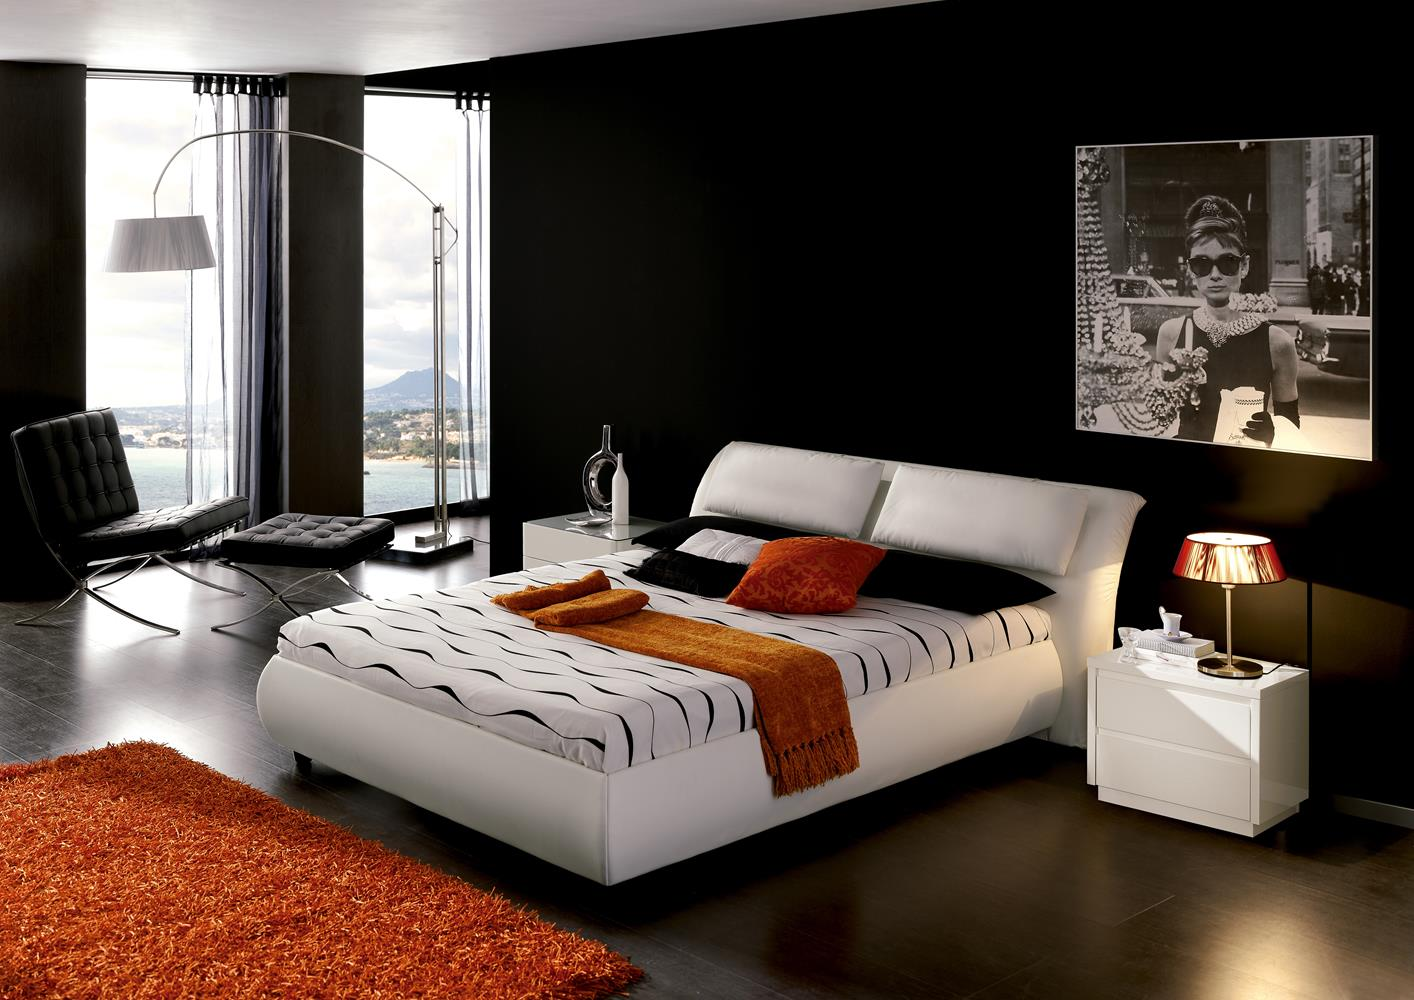 acheter votre lit contemporain en pvc blanc avec coffre chez simeuble. Black Bedroom Furniture Sets. Home Design Ideas